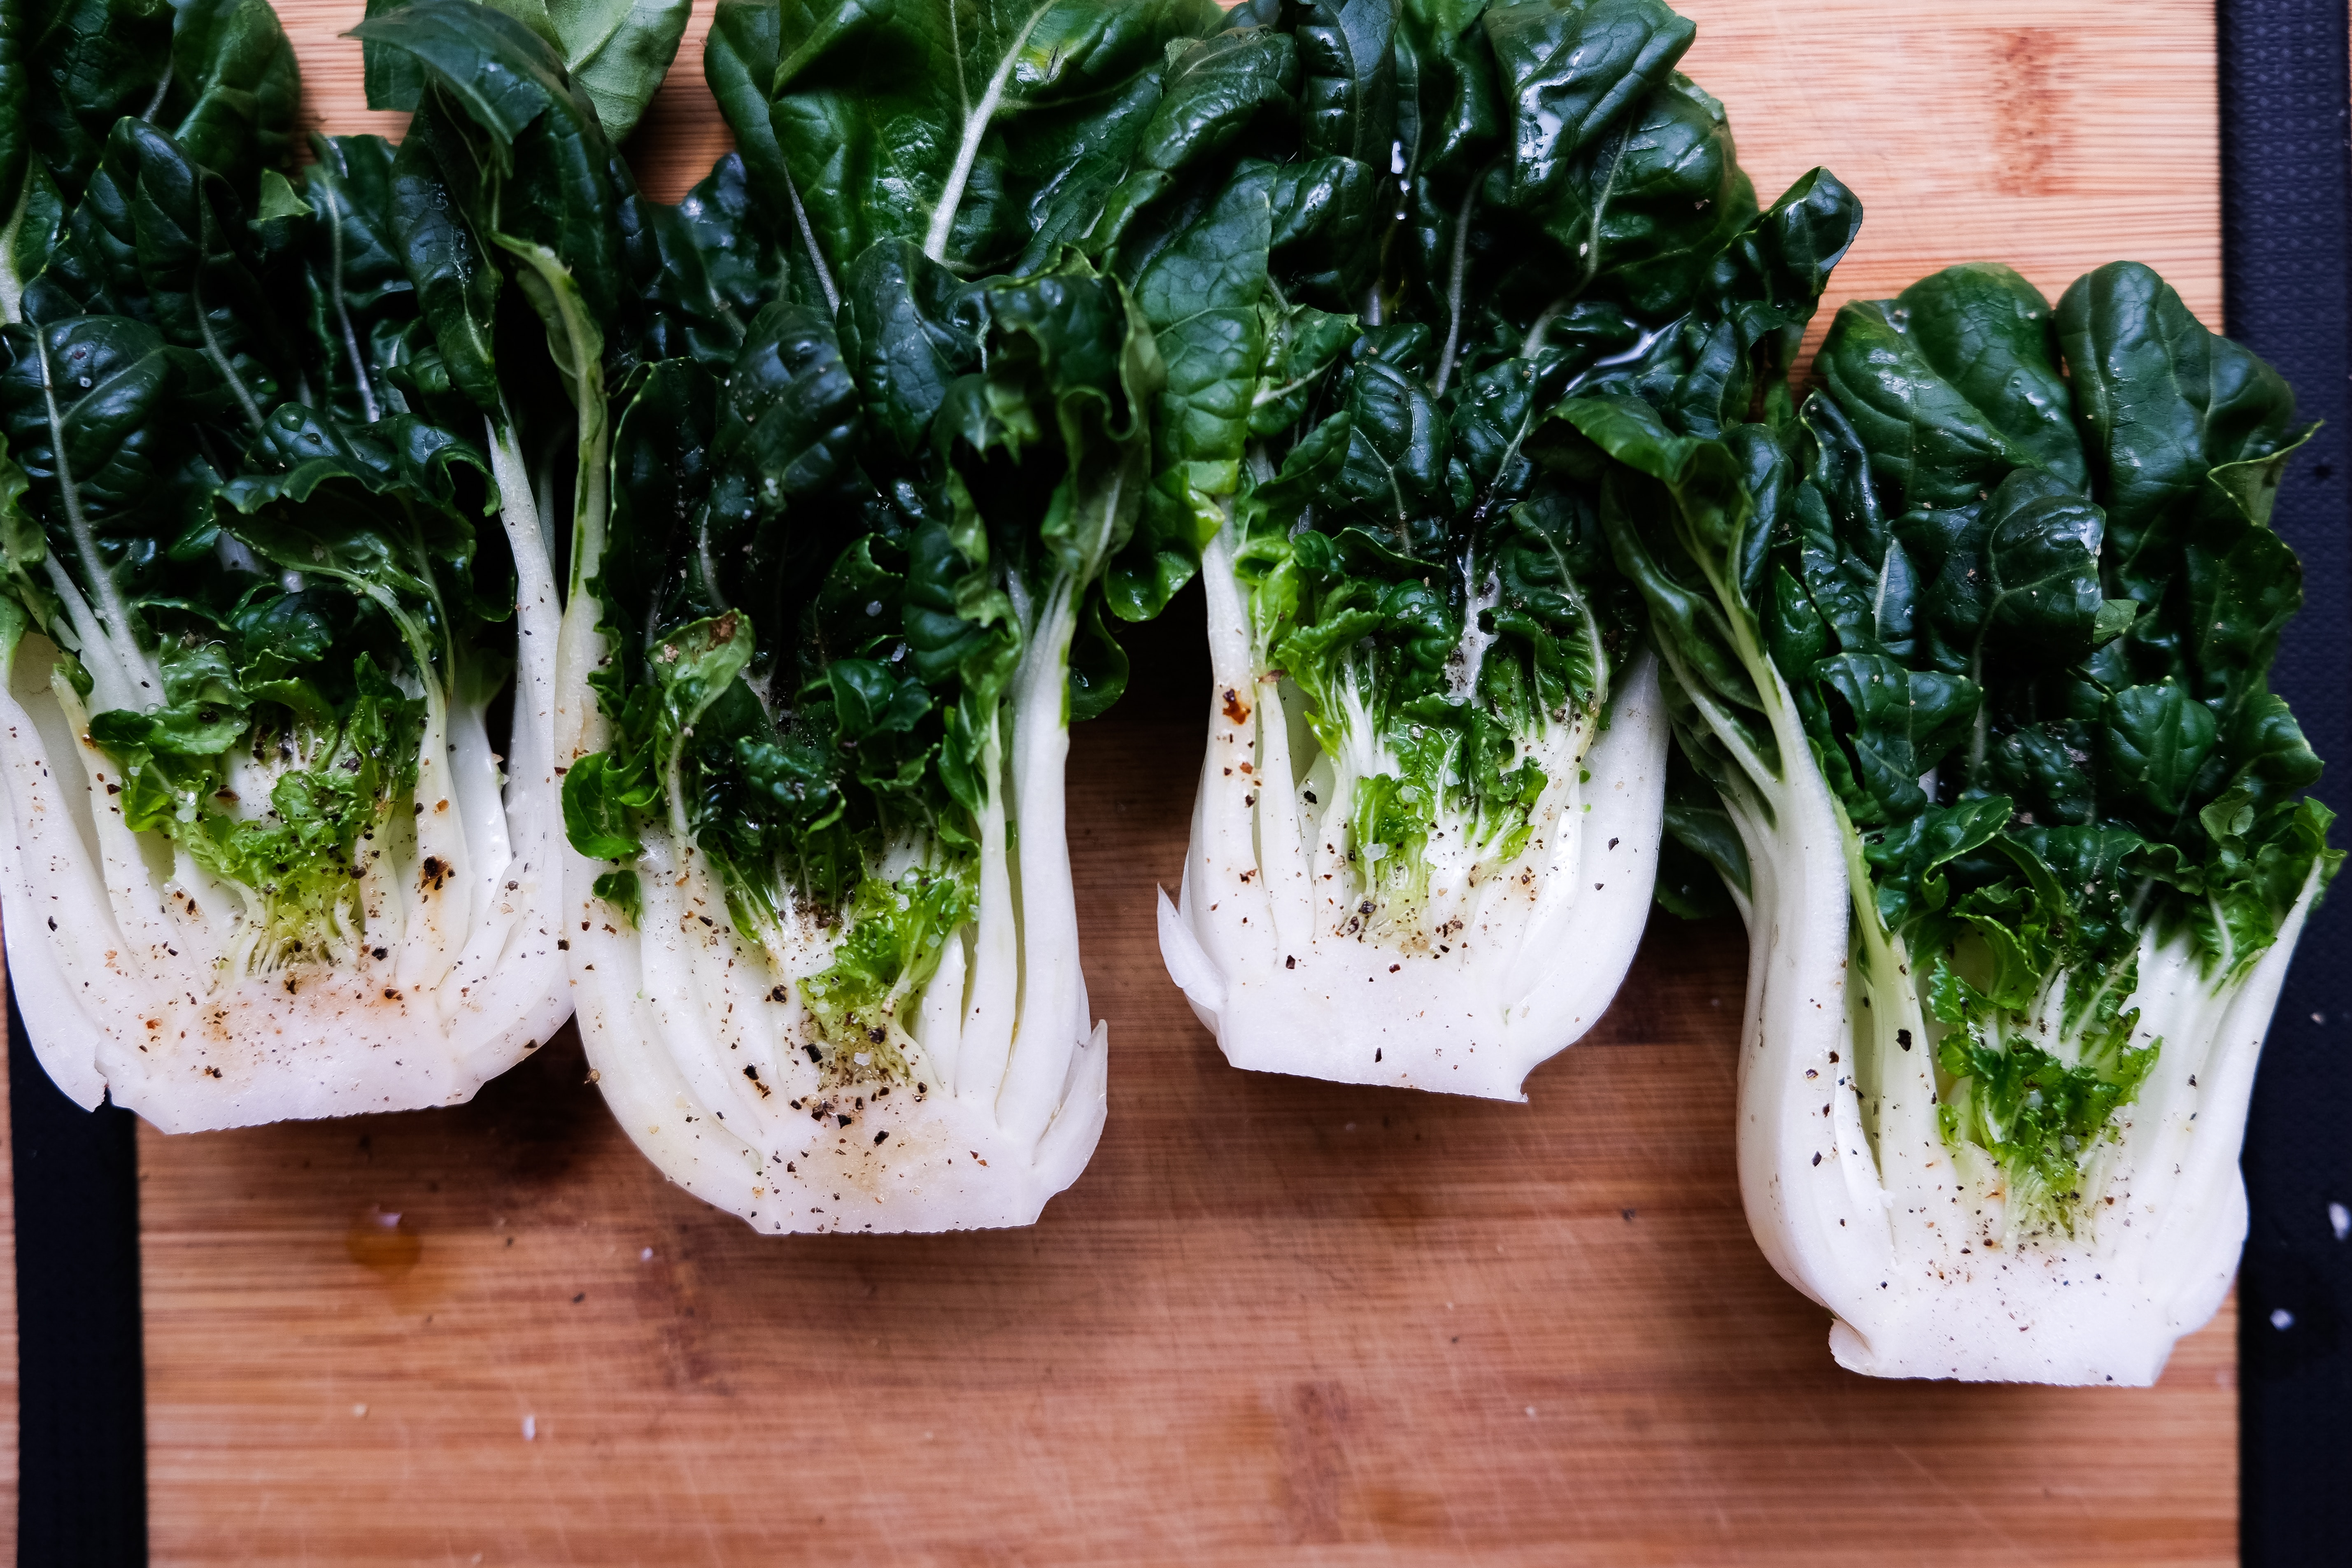 Four pieces of Bok Choy on a wooden cutting board